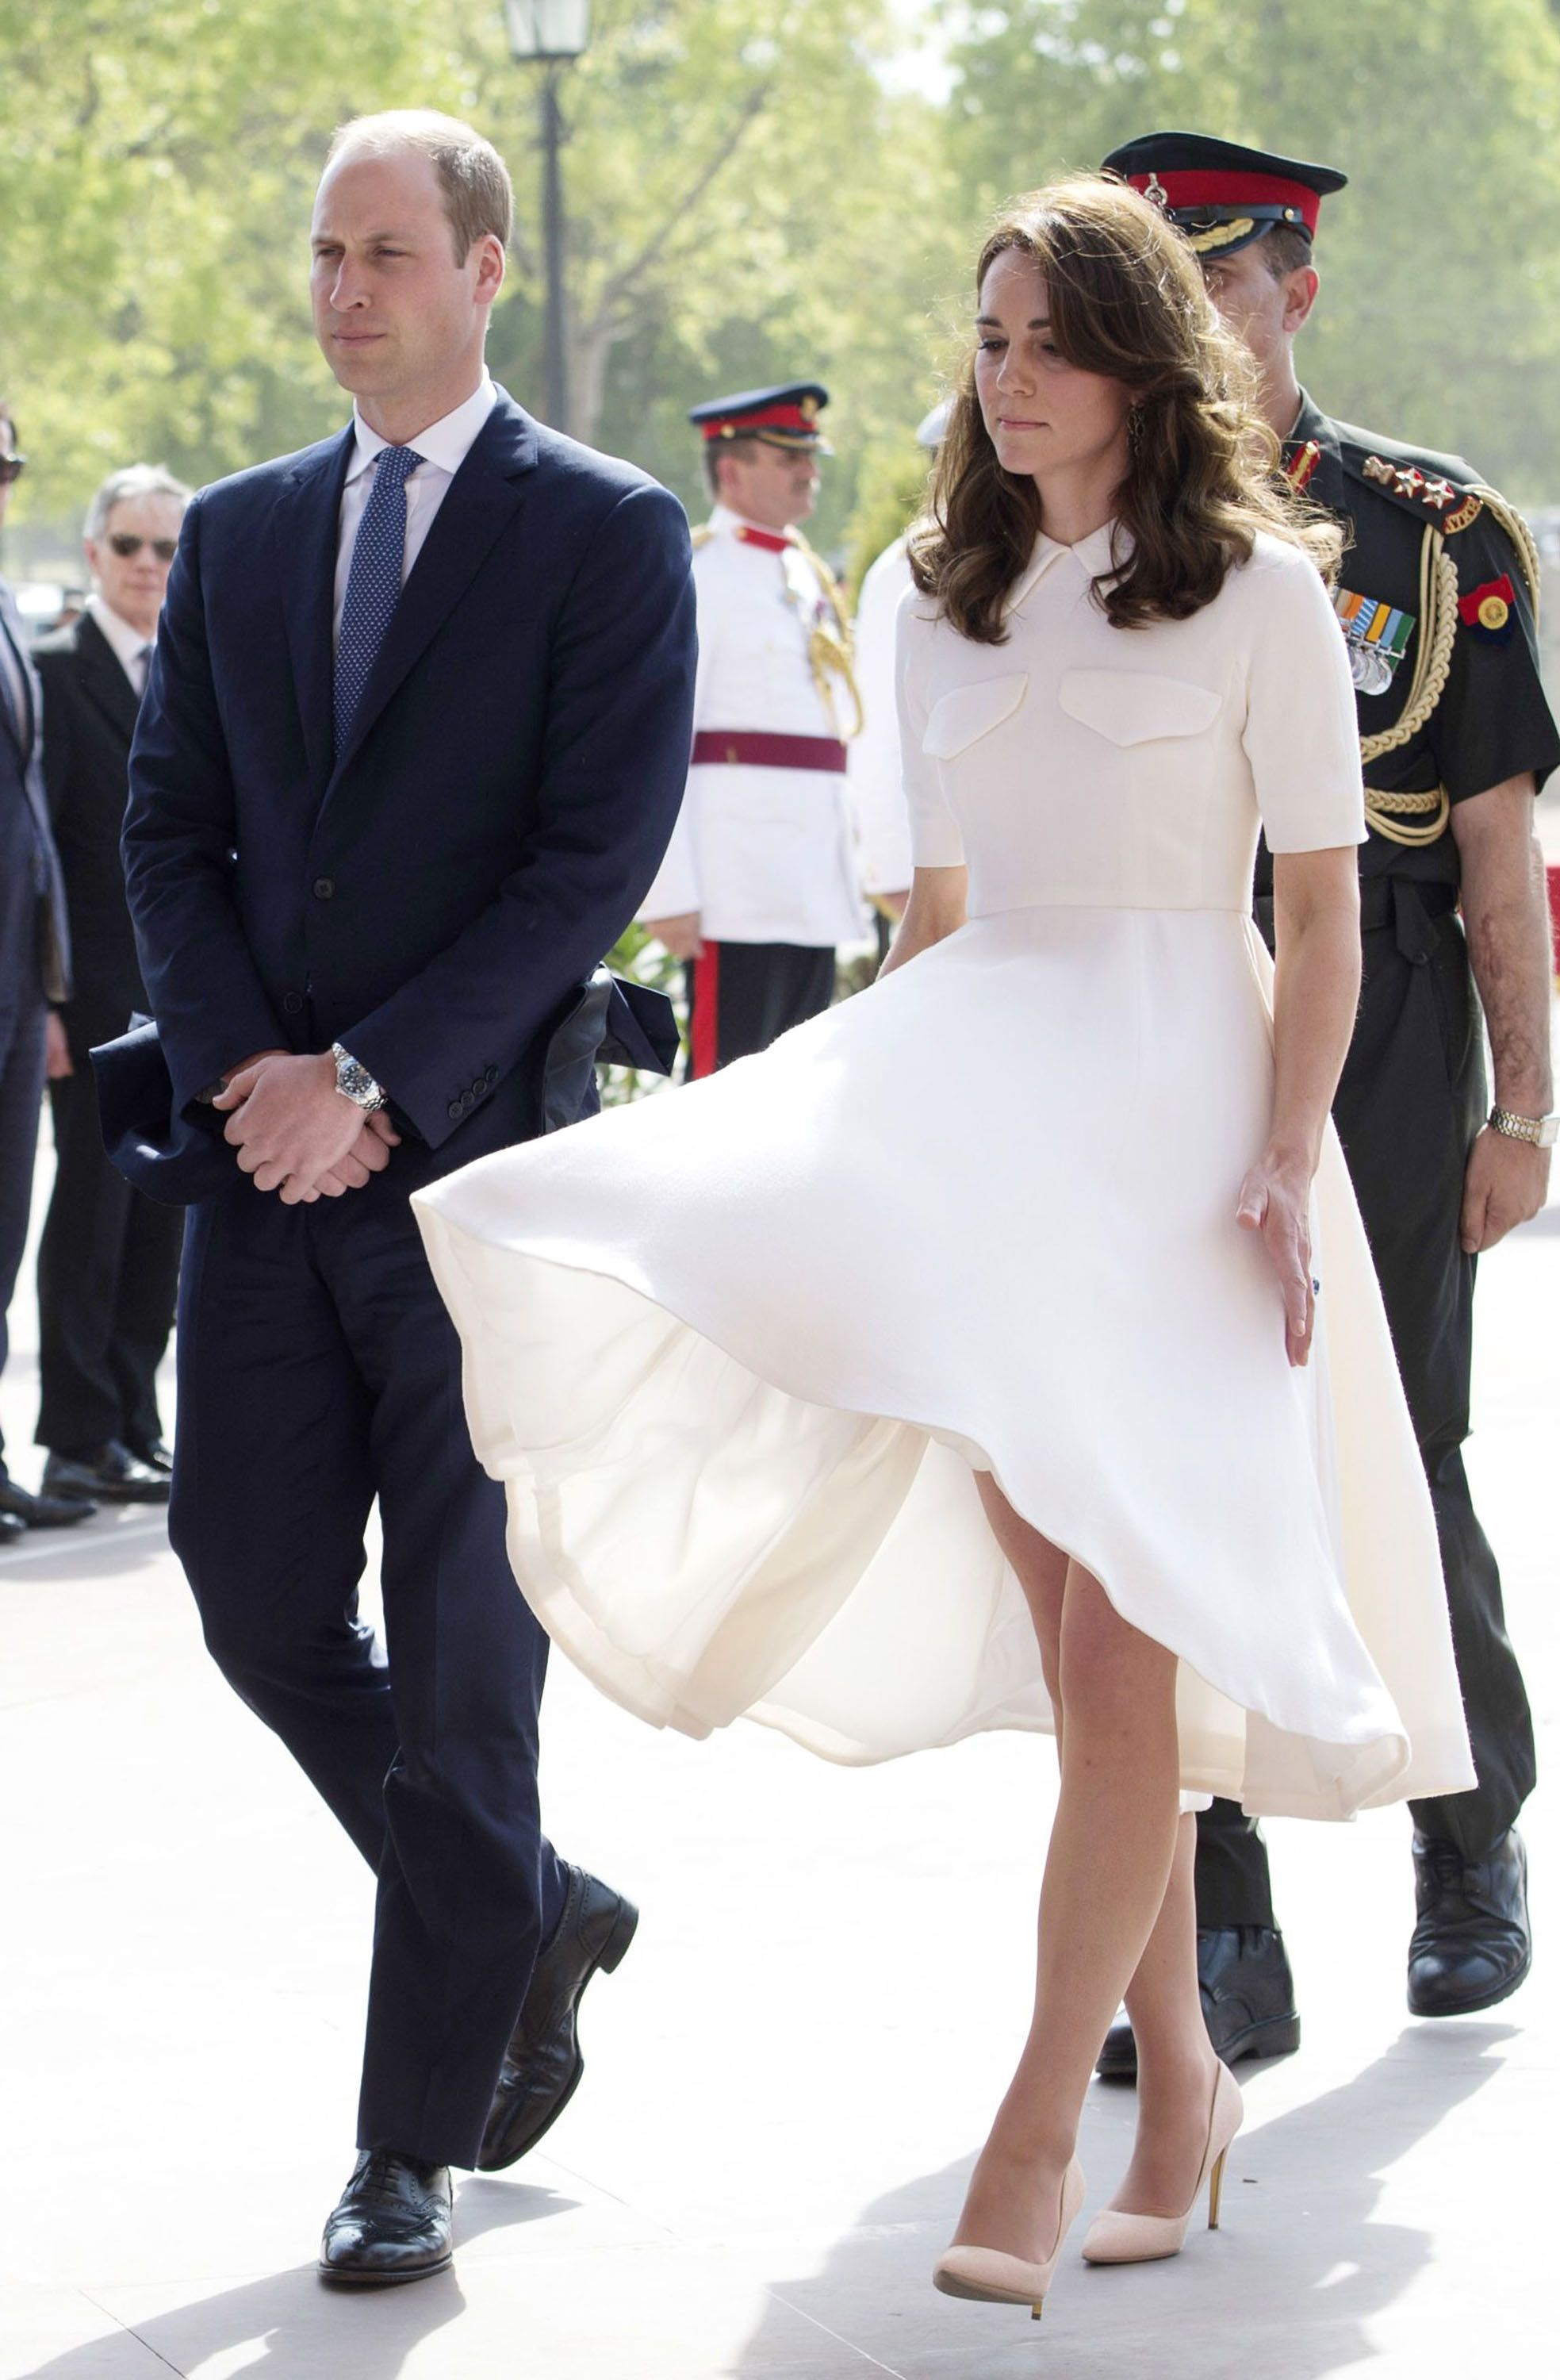 Kate Middleton s Most Controversial Royal Moments - Kate Middleton  Controversy Timeline 70058104b